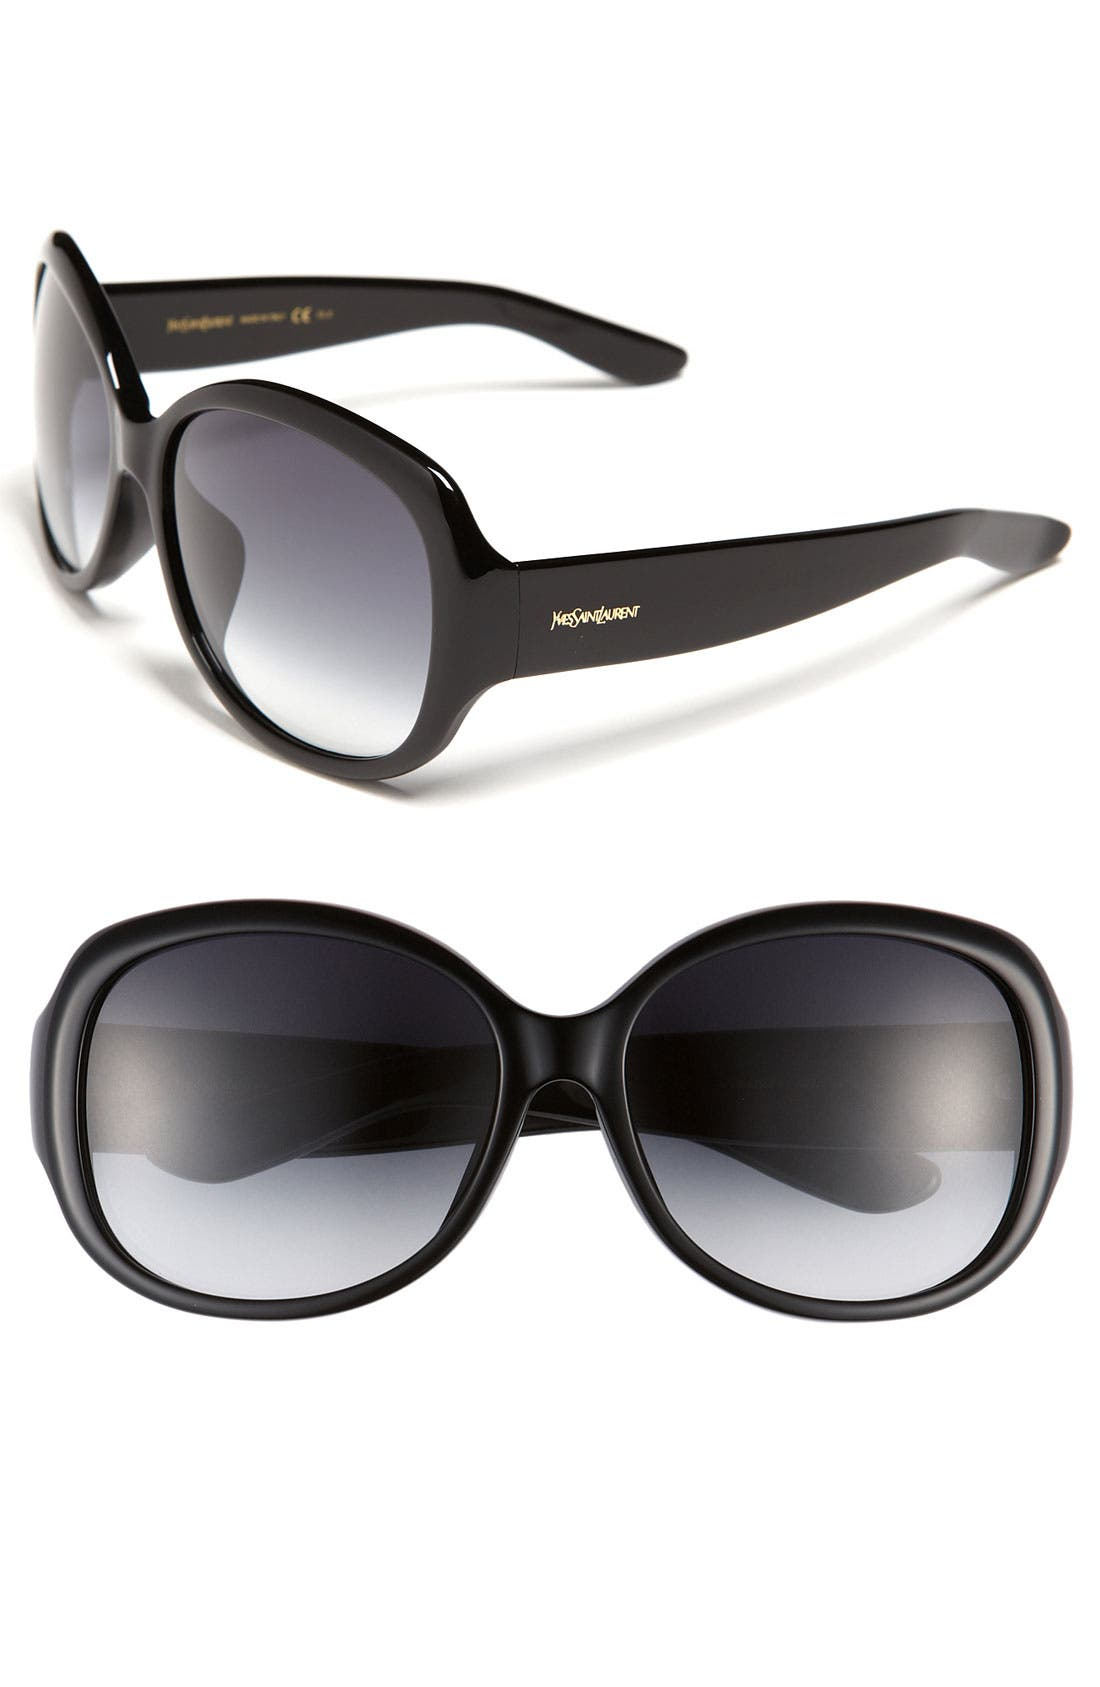 Main Image - Yves Saint Laurent Special Fit Sunglasses